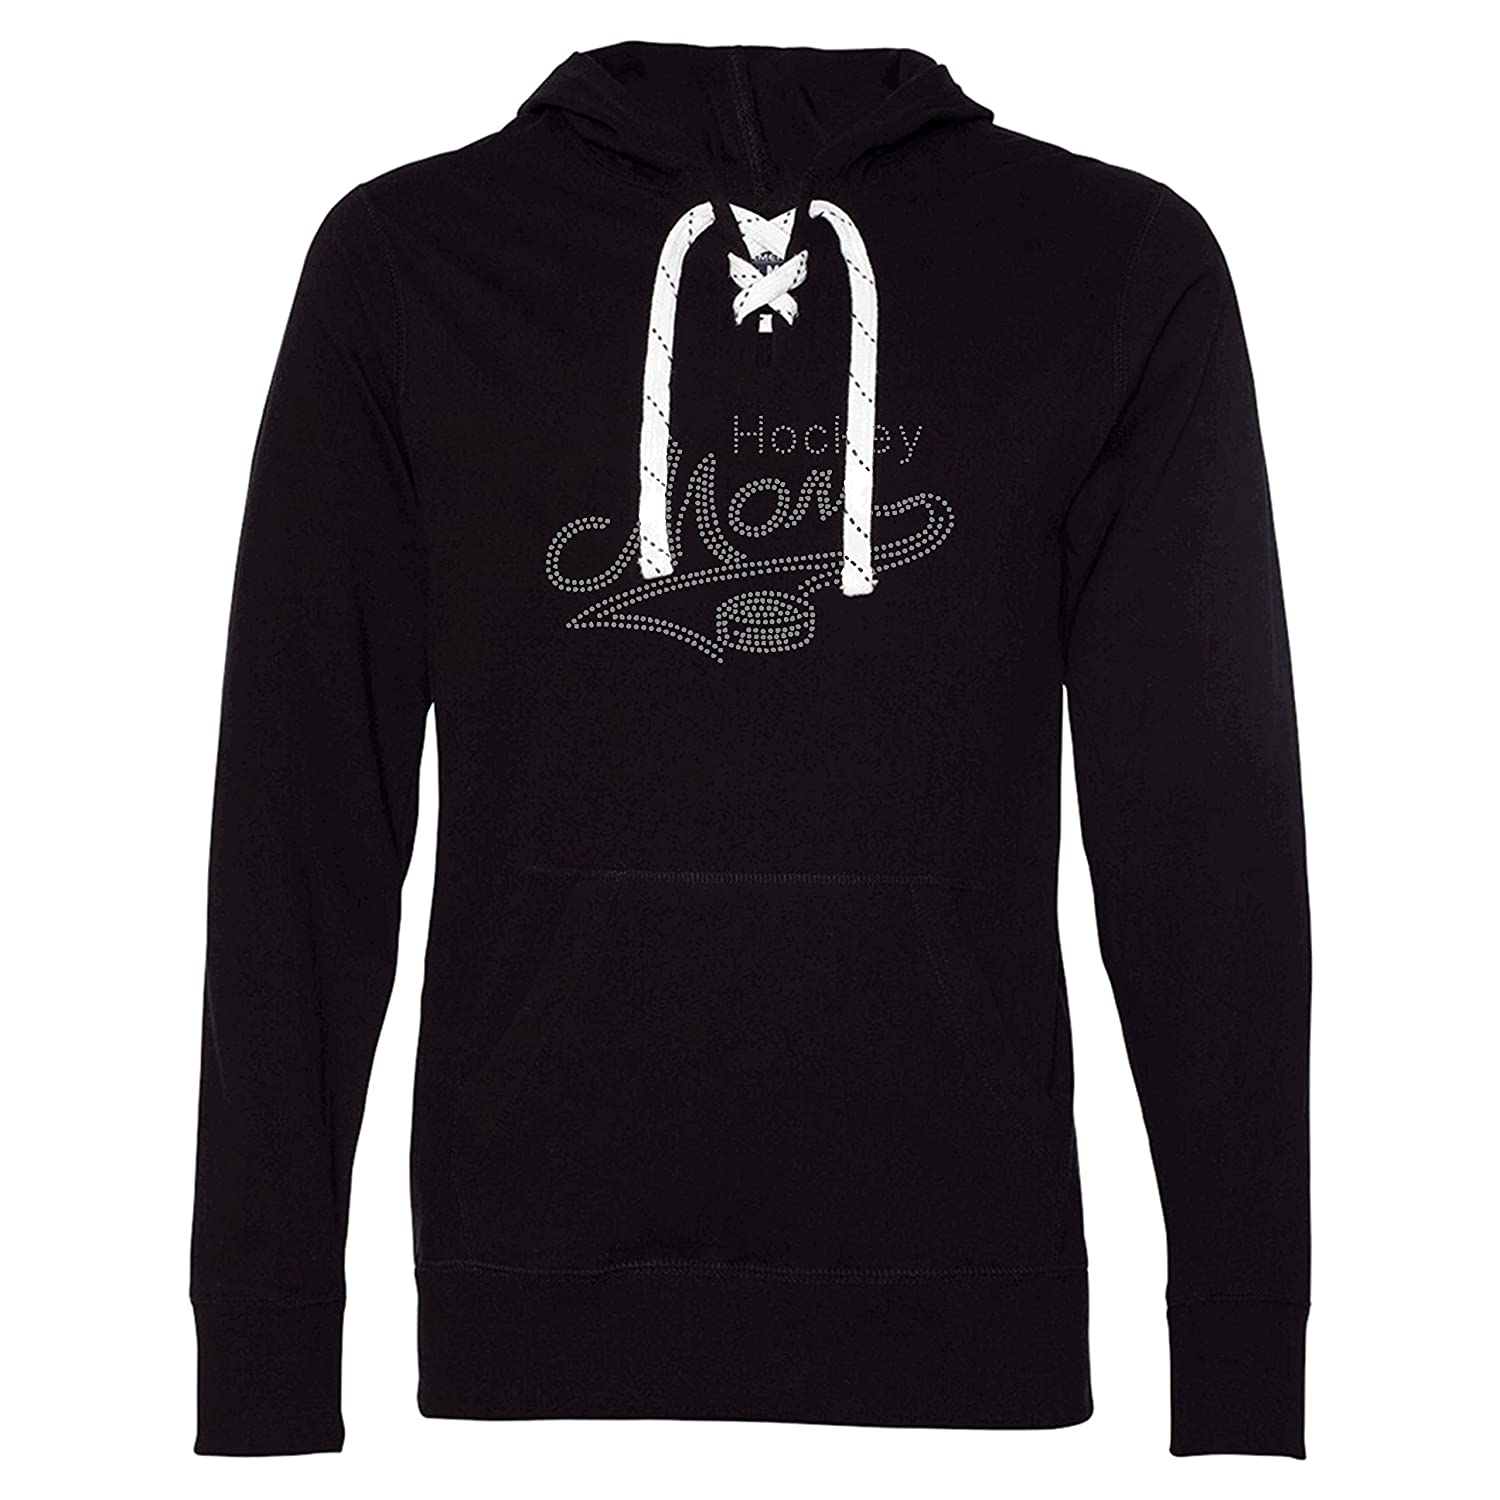 Hockey Mom Hoodie T-Shirt with Skate Lace String and Rhinestones